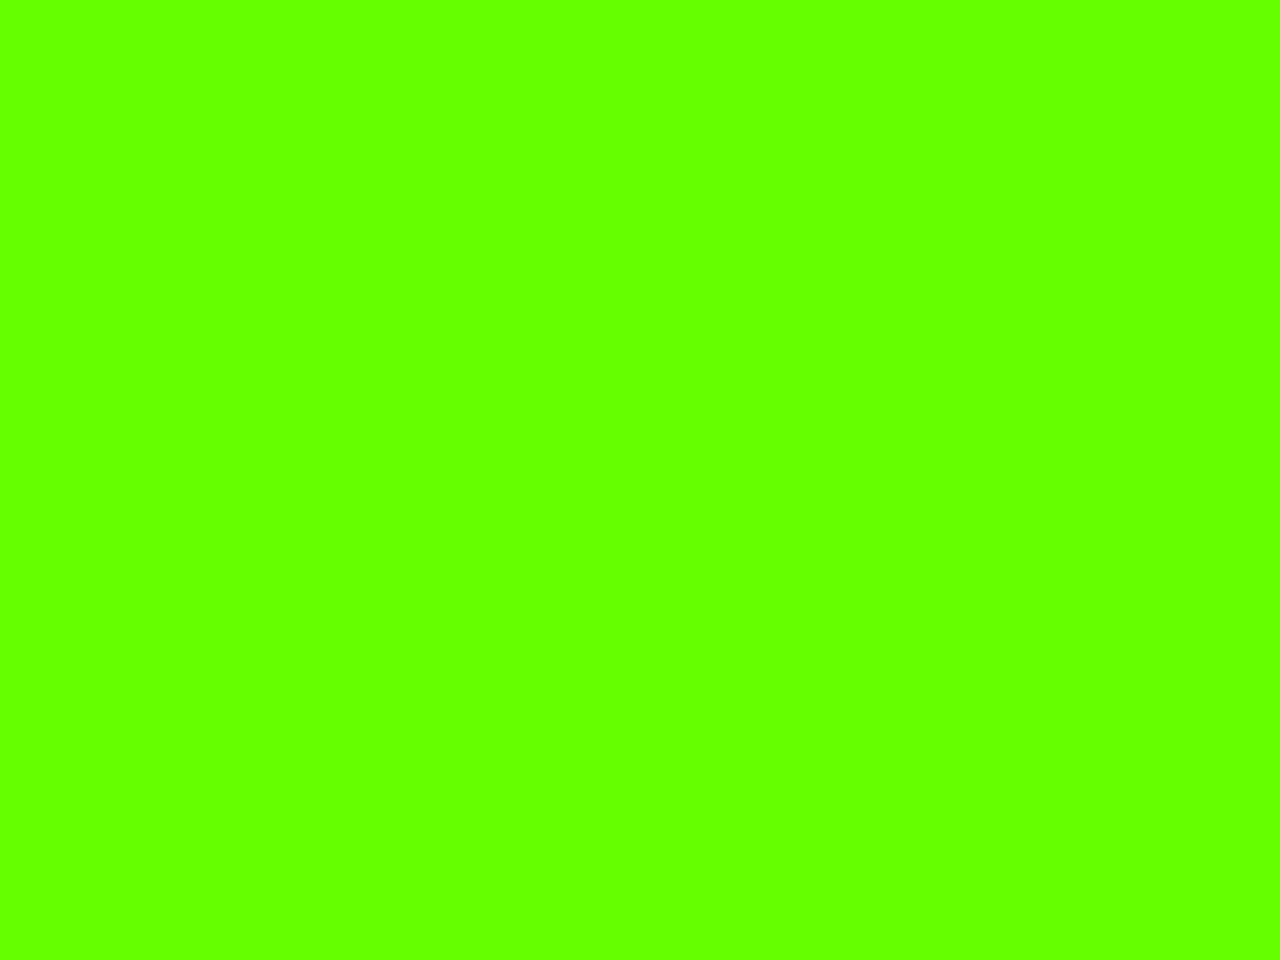 1280x960 Bright Green Solid Color Background